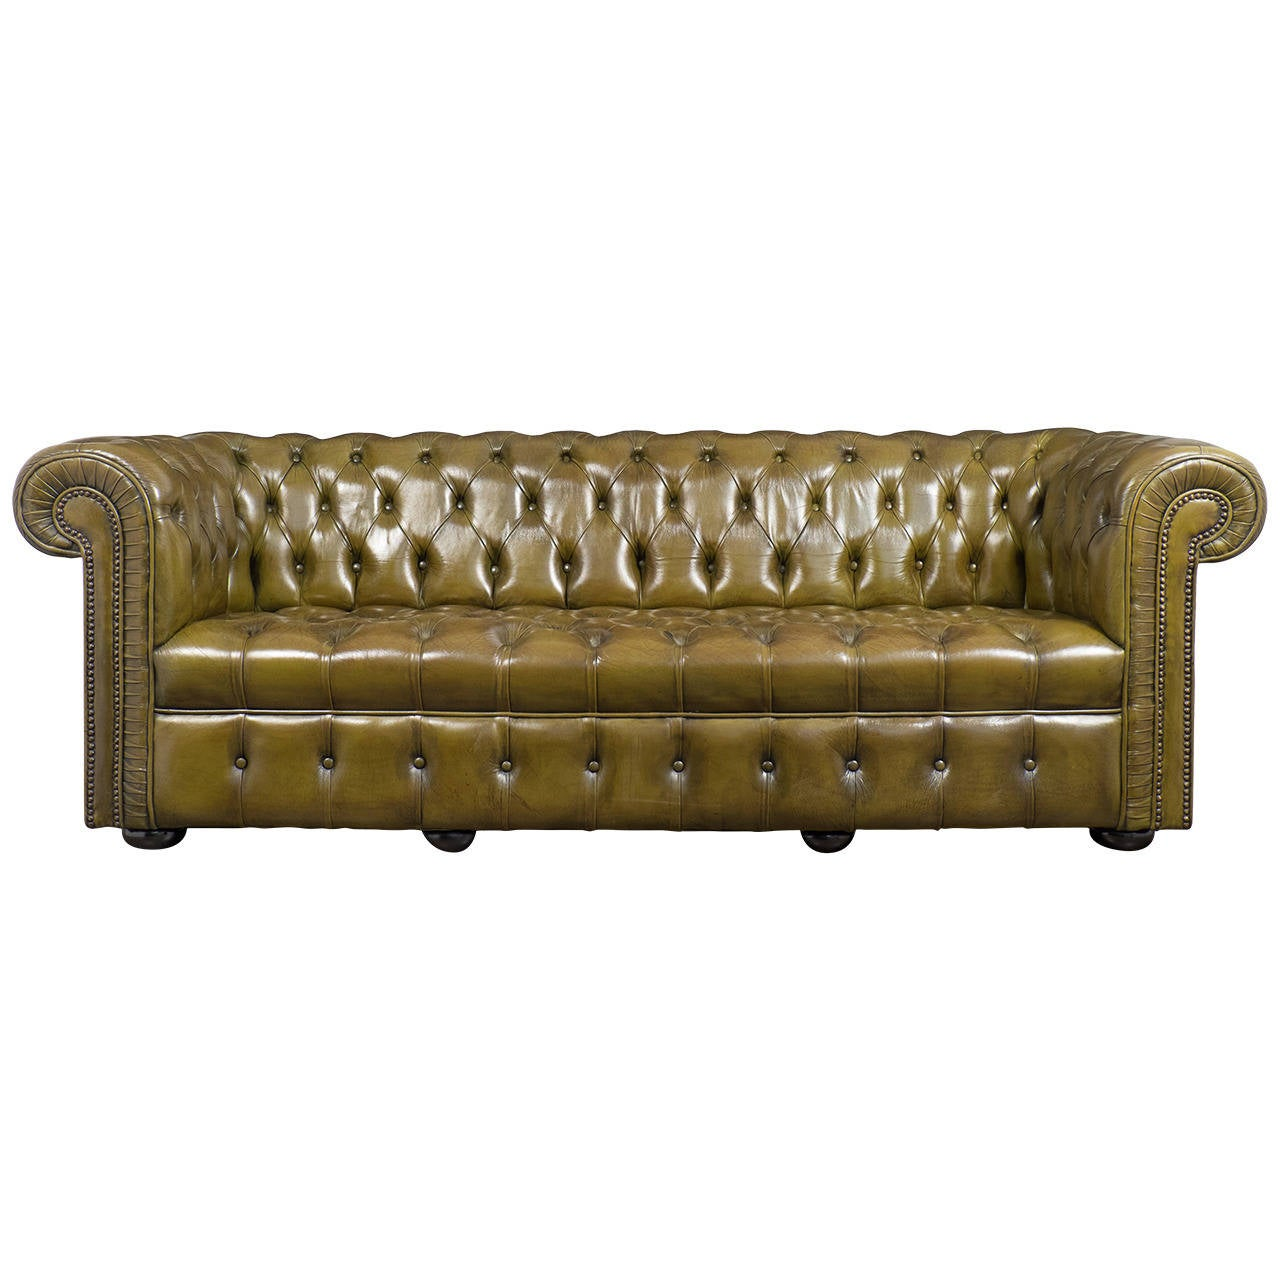 Vintage Green Leather Chesterfield Sofa at 1stdibs